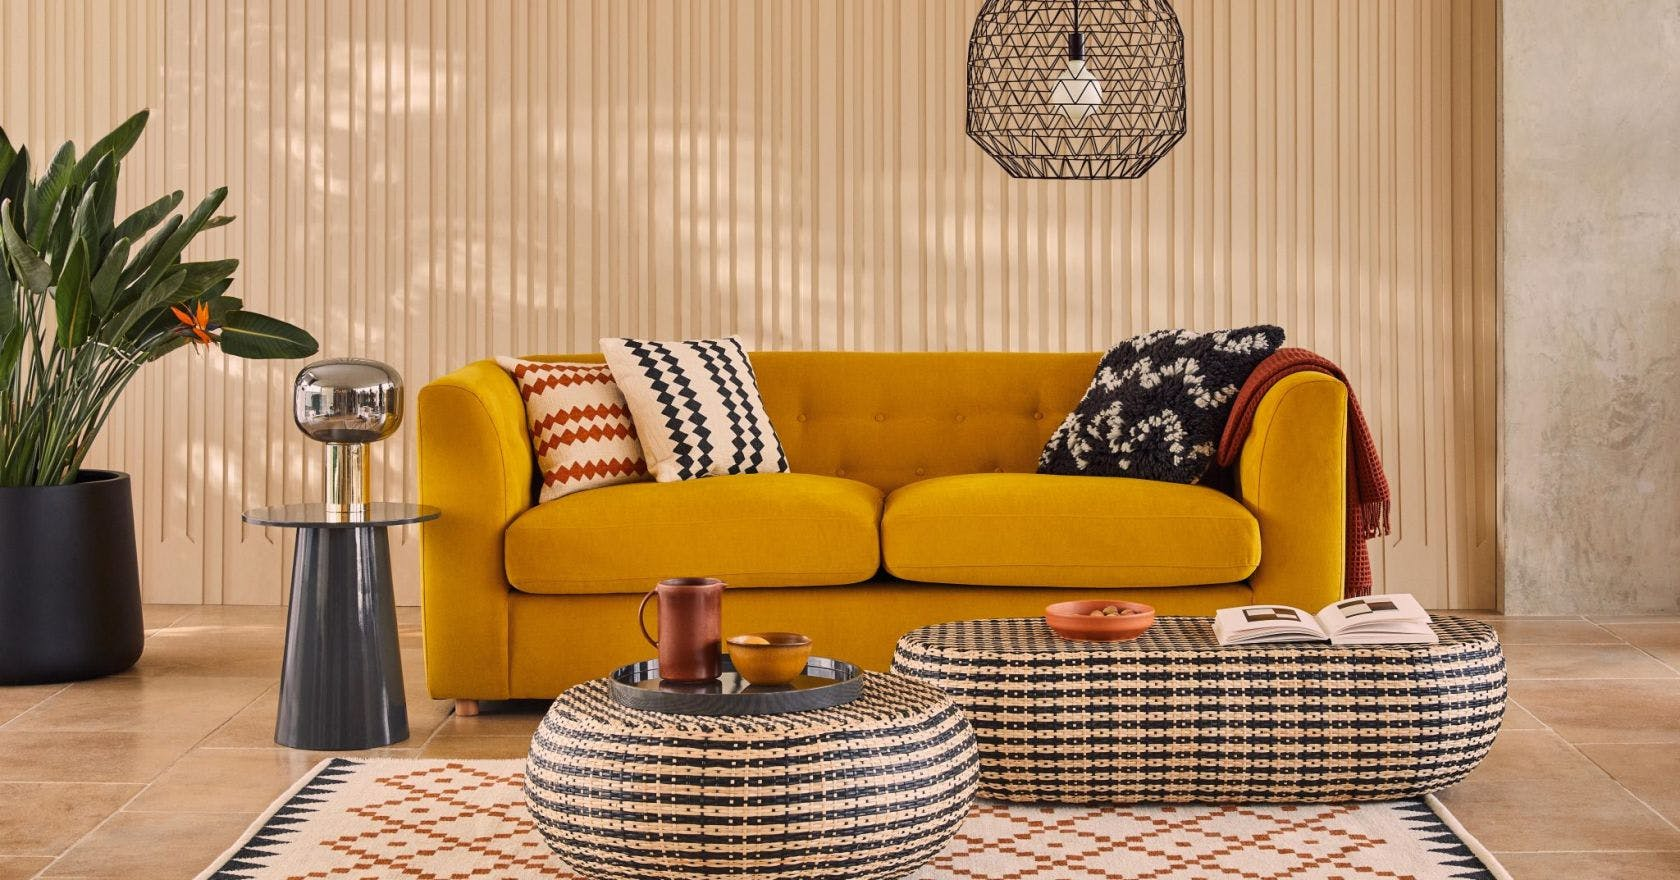 Rattan furniture to nail the natural decor trend